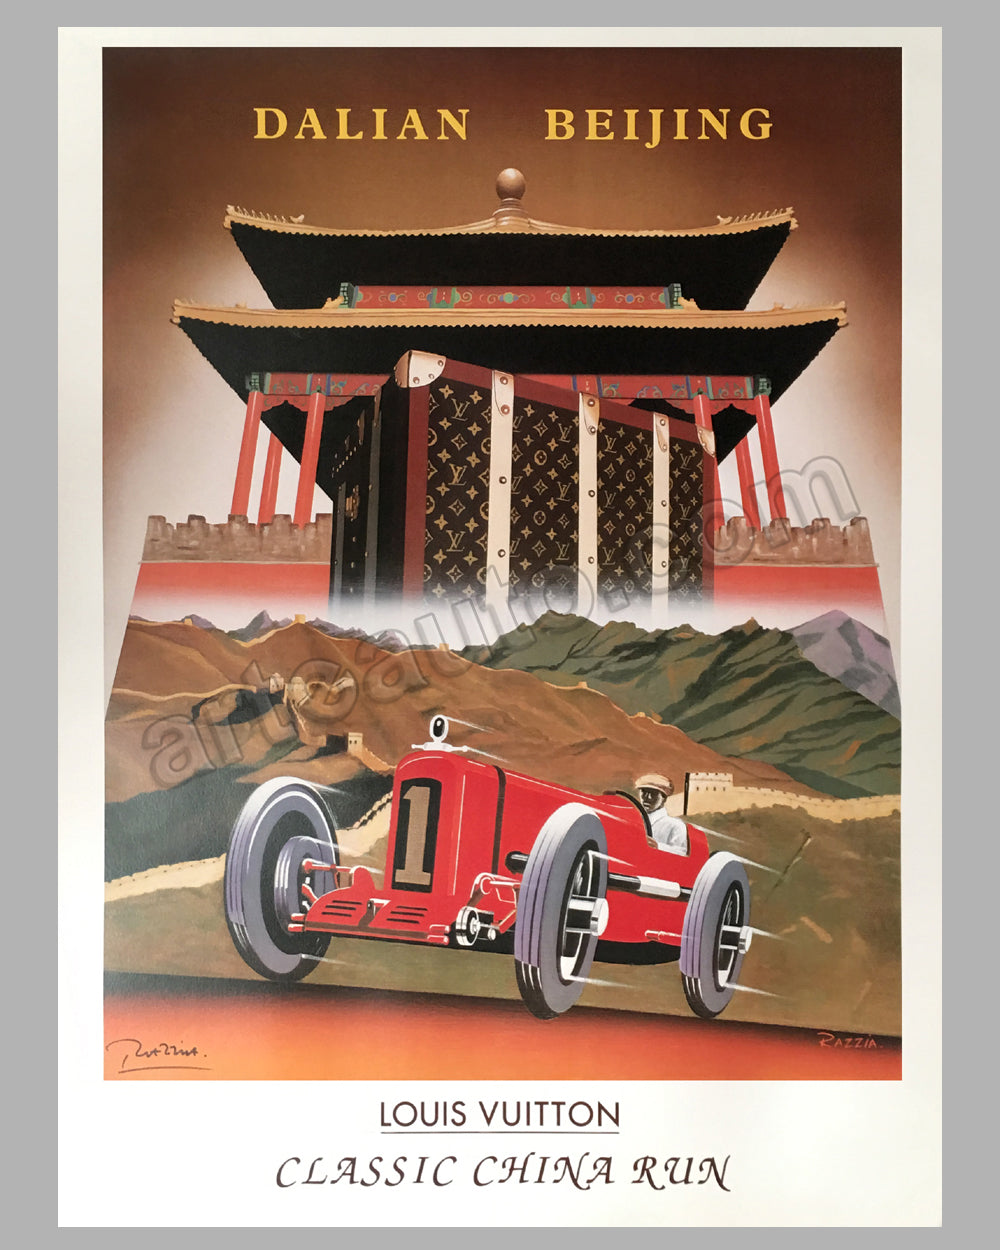 Louis Vuitton China Run 1998 large original poster by Razzia